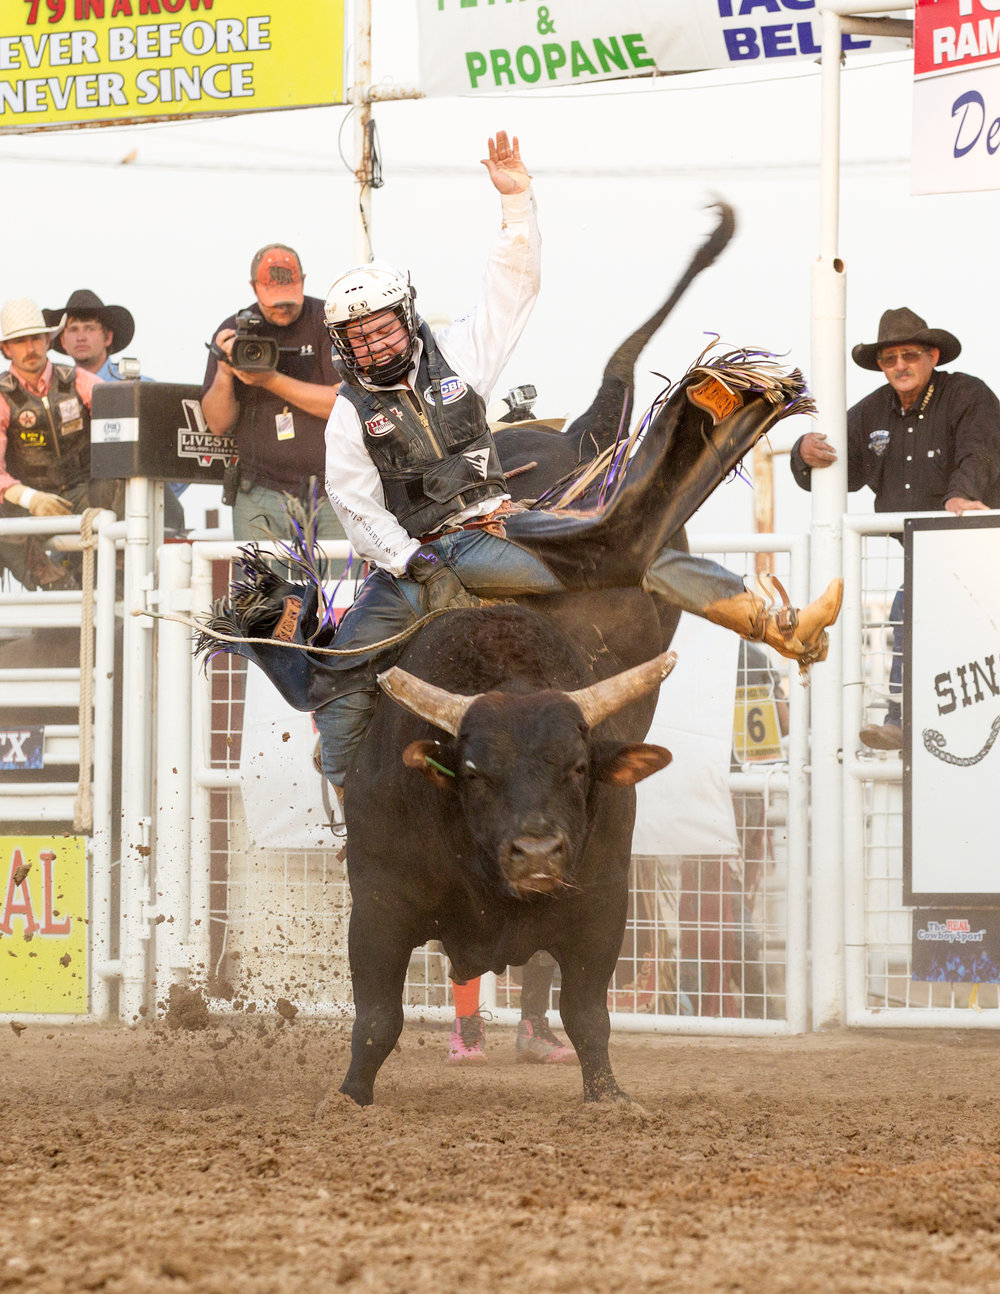 Benton riding Mike Rawson's 1380 Lumberjack at the George Paul Memorial Bull Riding circa 2013